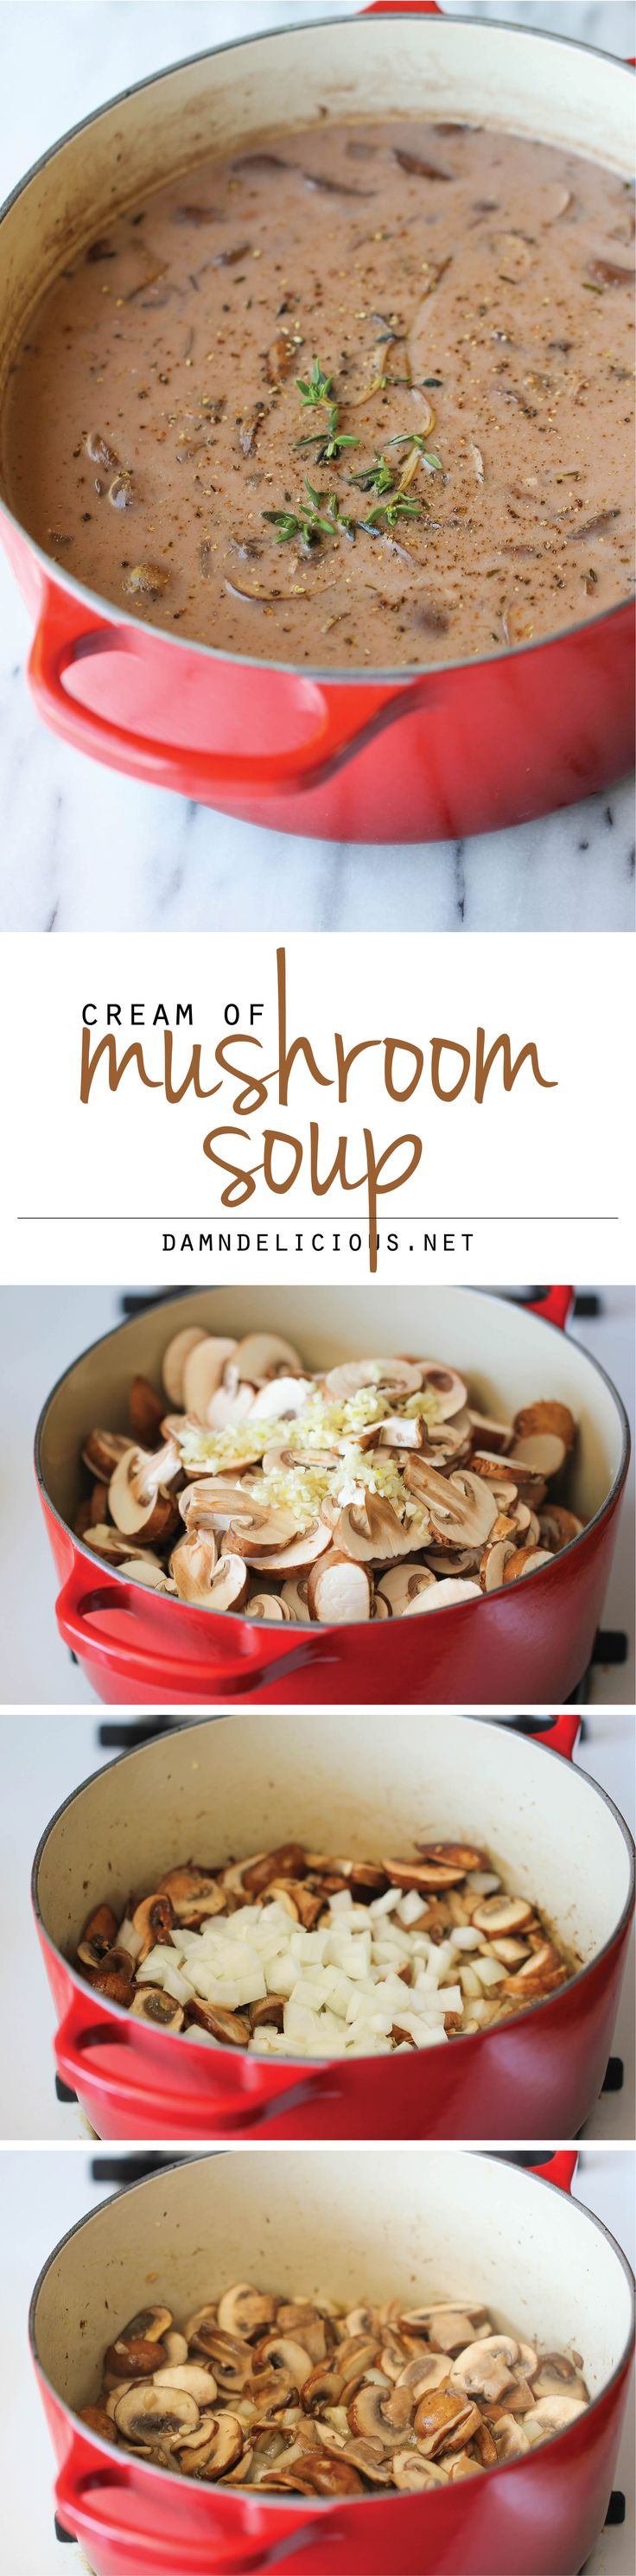 Homemade Cream of Mushroom Soup - The creamiest mushroom soup that tastes like the canned stuff but its healthier, creamier and tastier!